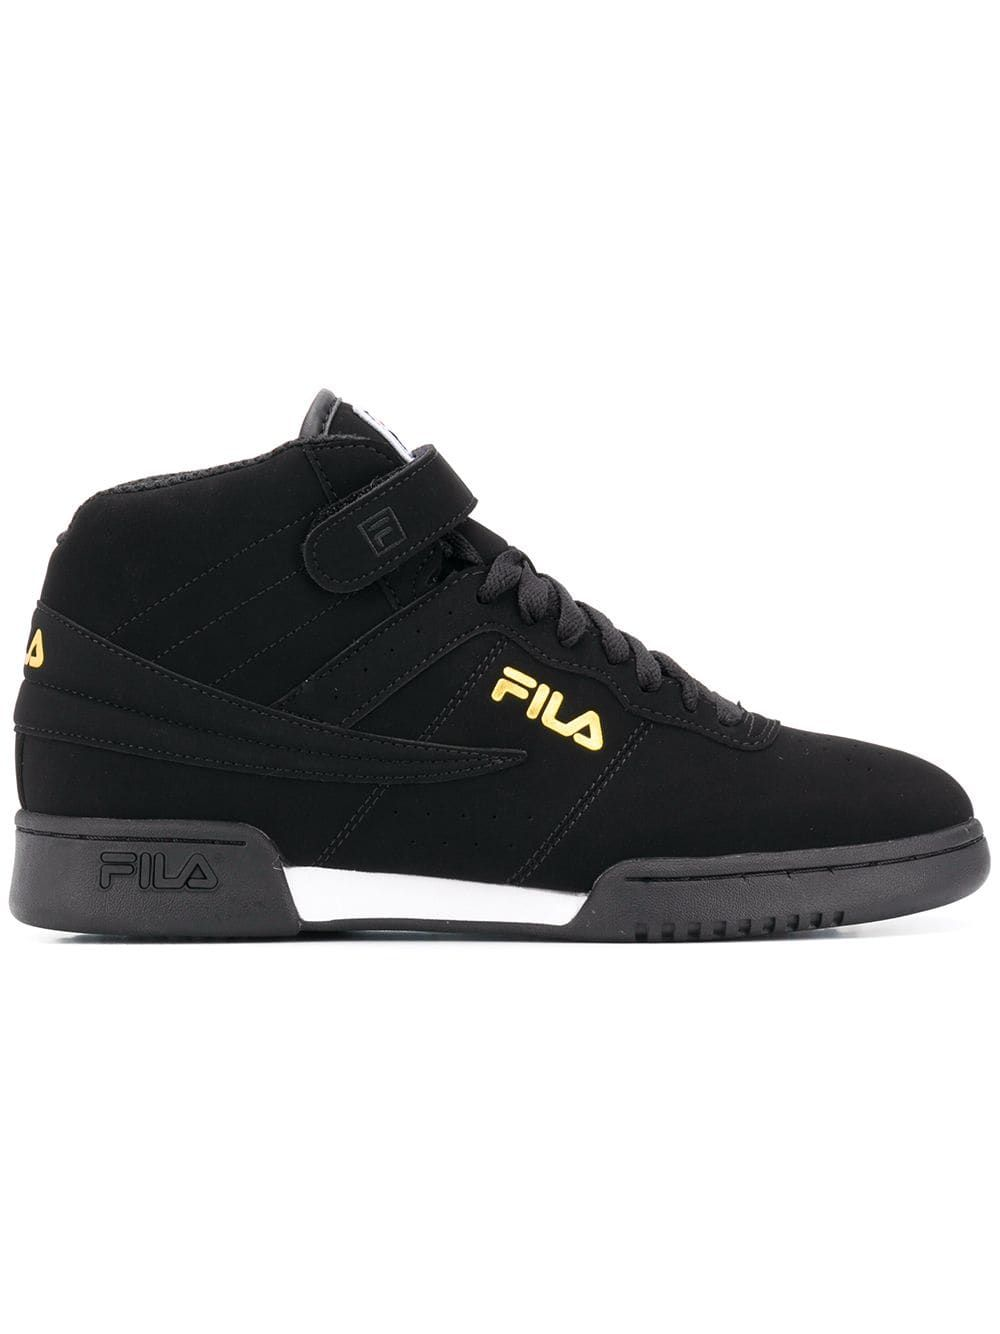 FILA FILA F 13 LINEKER SNEAKERS BLACK. #fila #shoes | Fila